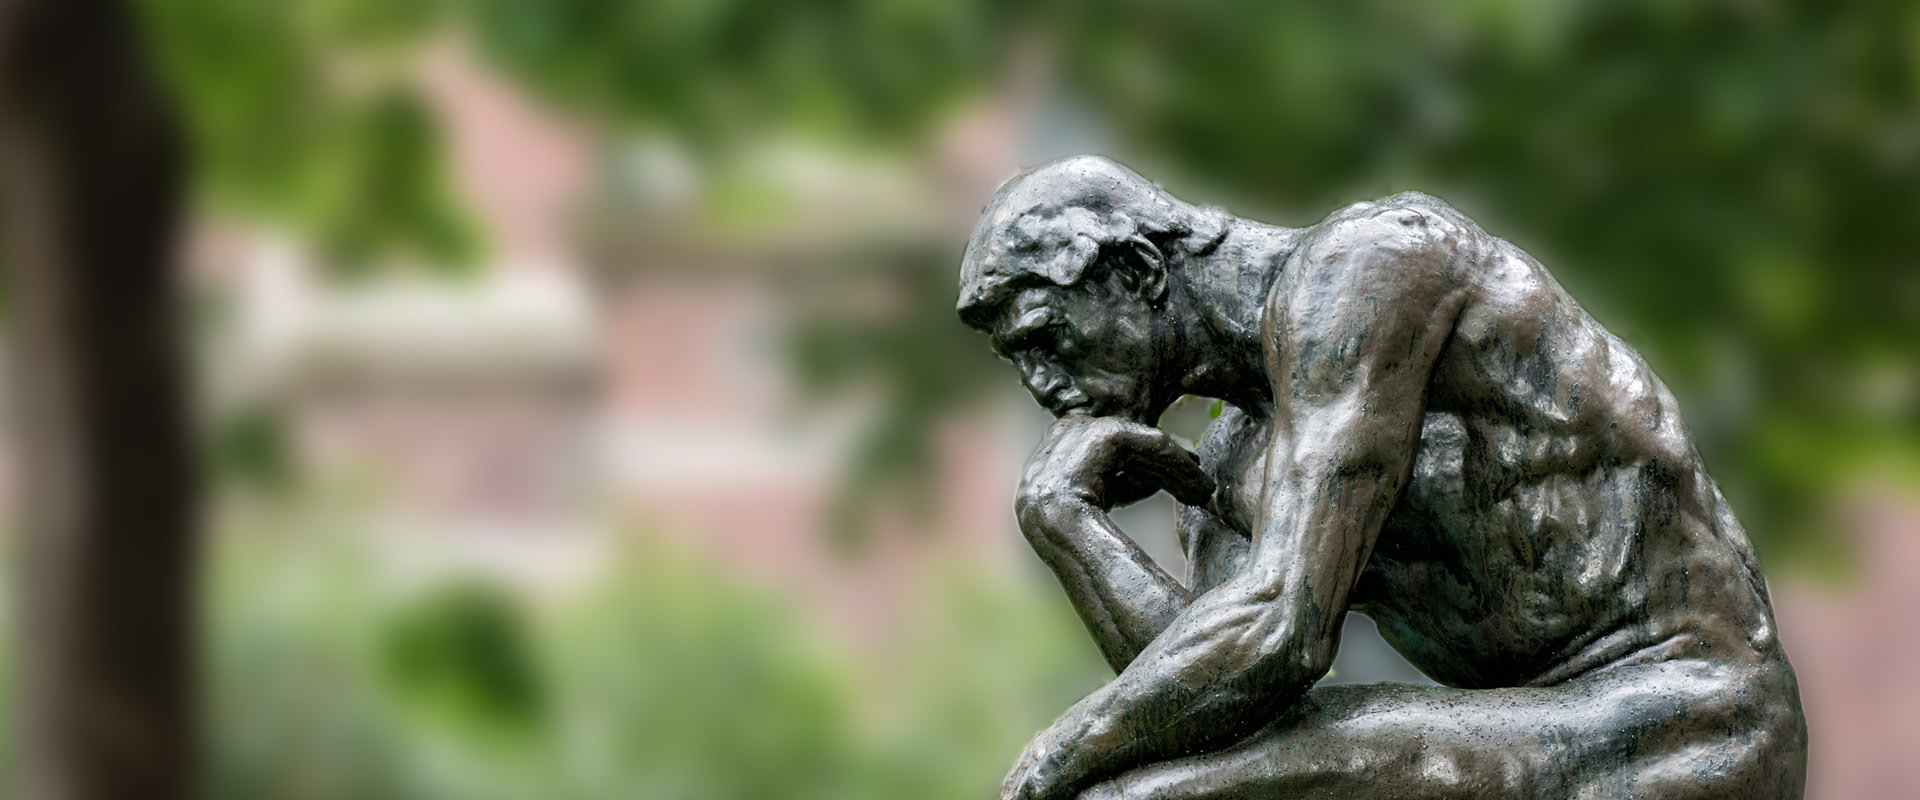 Statue of a philosopher thinking